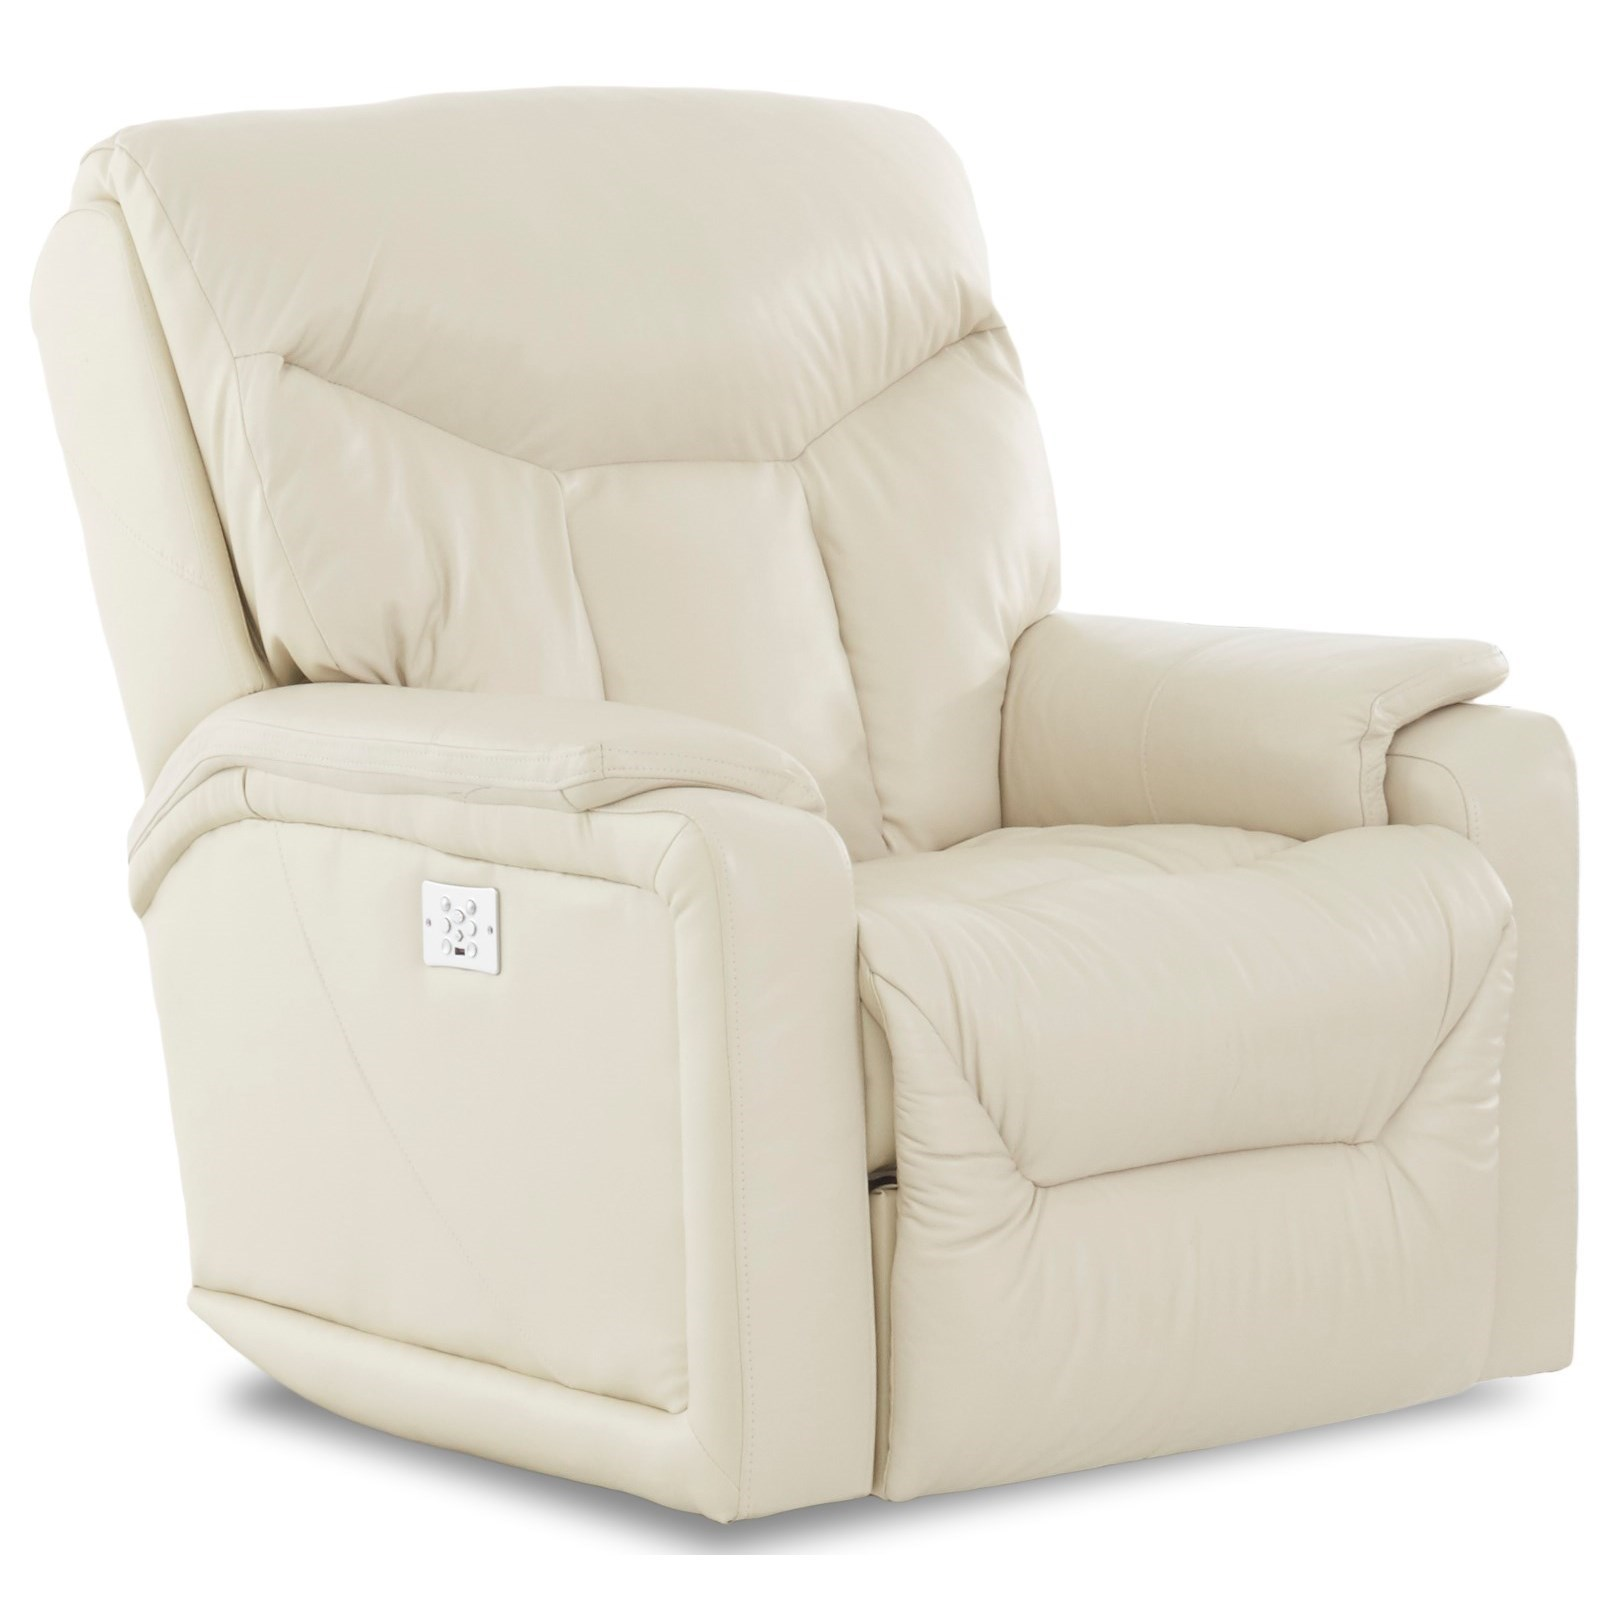 Swivel Rocker Recliner Chair Klaussner Bugatti Casual Swivel Rocker Recliner Morris Home